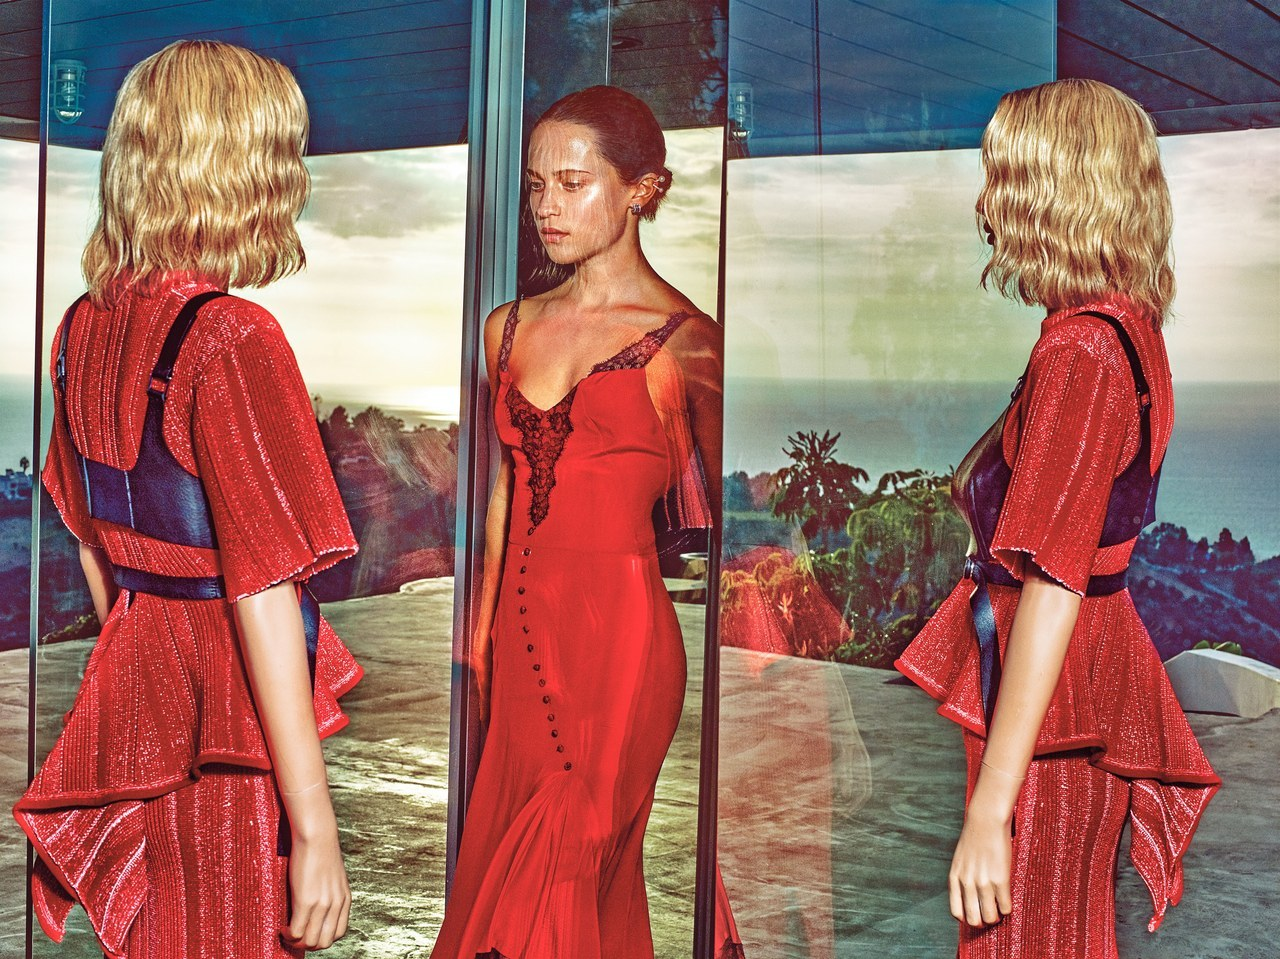 Vogue: Alicia Vikander - Love & PR: Fashion Media X Fashion